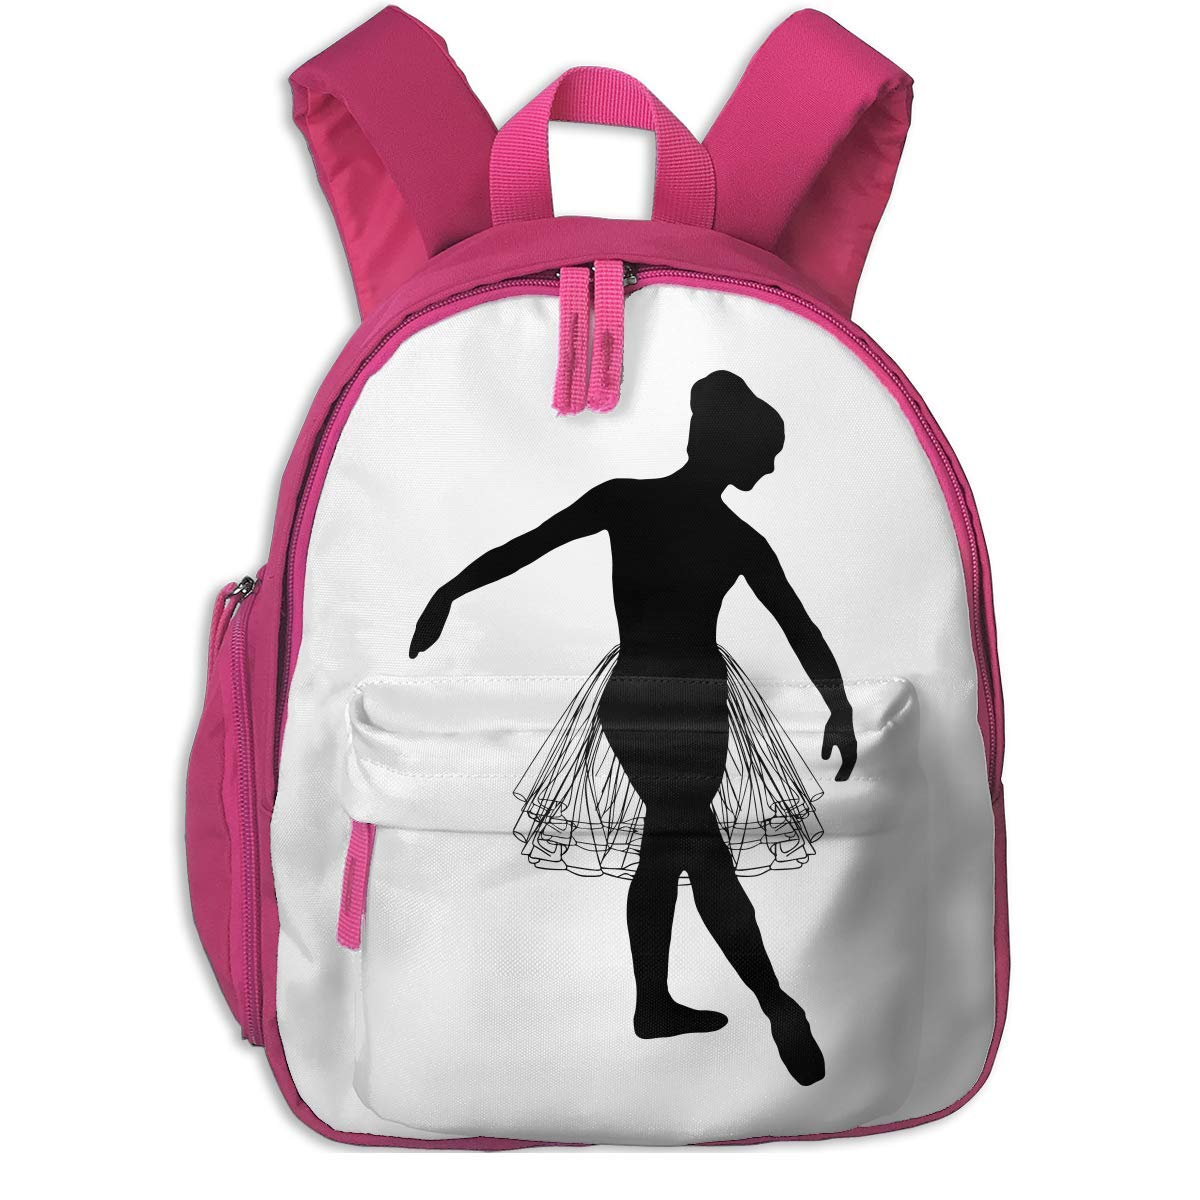 gfhfdhdfhtryh School Backpack For Girls Boys, Kids Cute Ballet ncer Cartoon Backpacks Book Bag G31ZUAWMK6Y3EQ6KUUHP-0-0